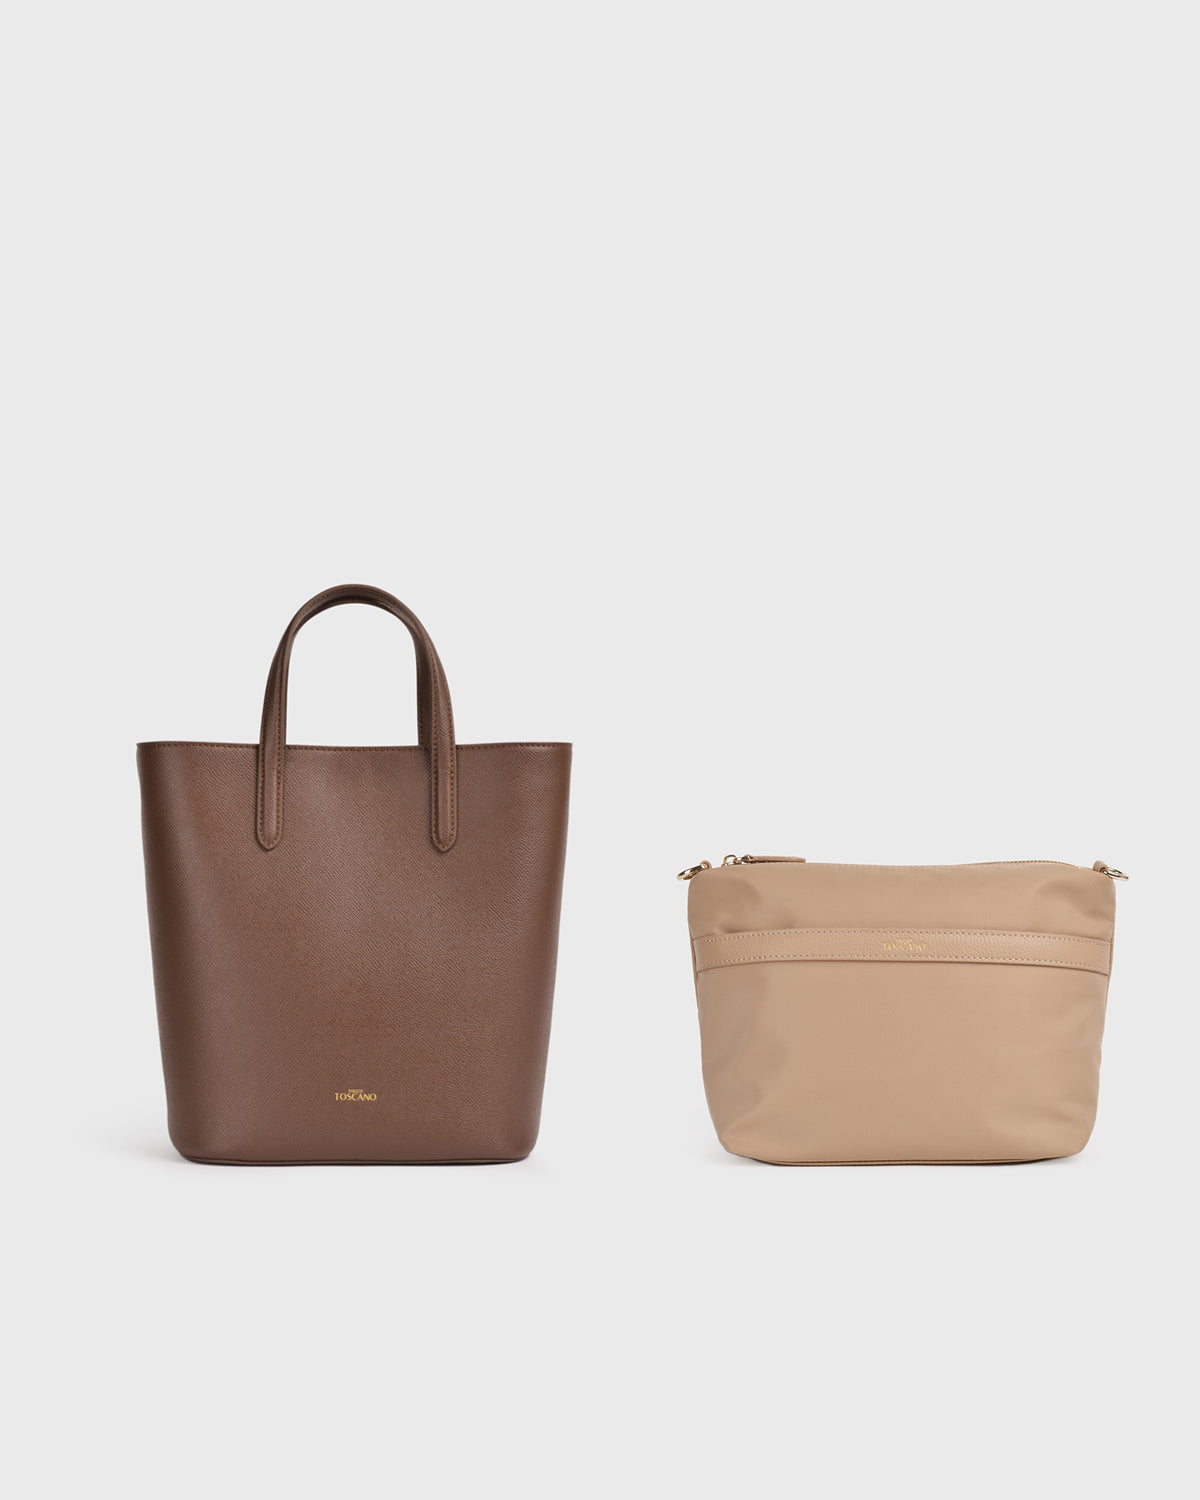 vegan leather bags singapore